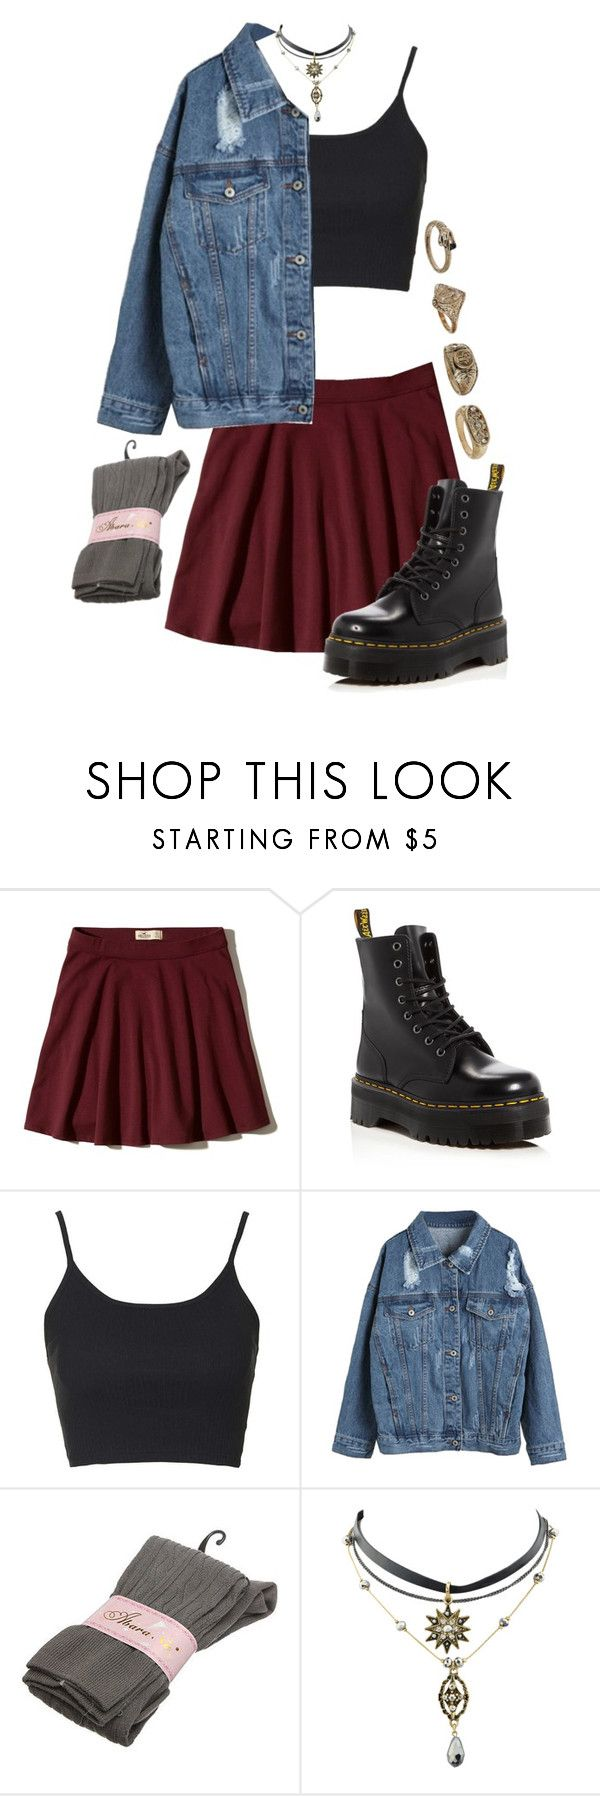 """""""Never wanted it to be so cold"""" by pageslearntothink on Polyvore featuring Hollister Co., Dr. Martens, Topshop and WithChic"""